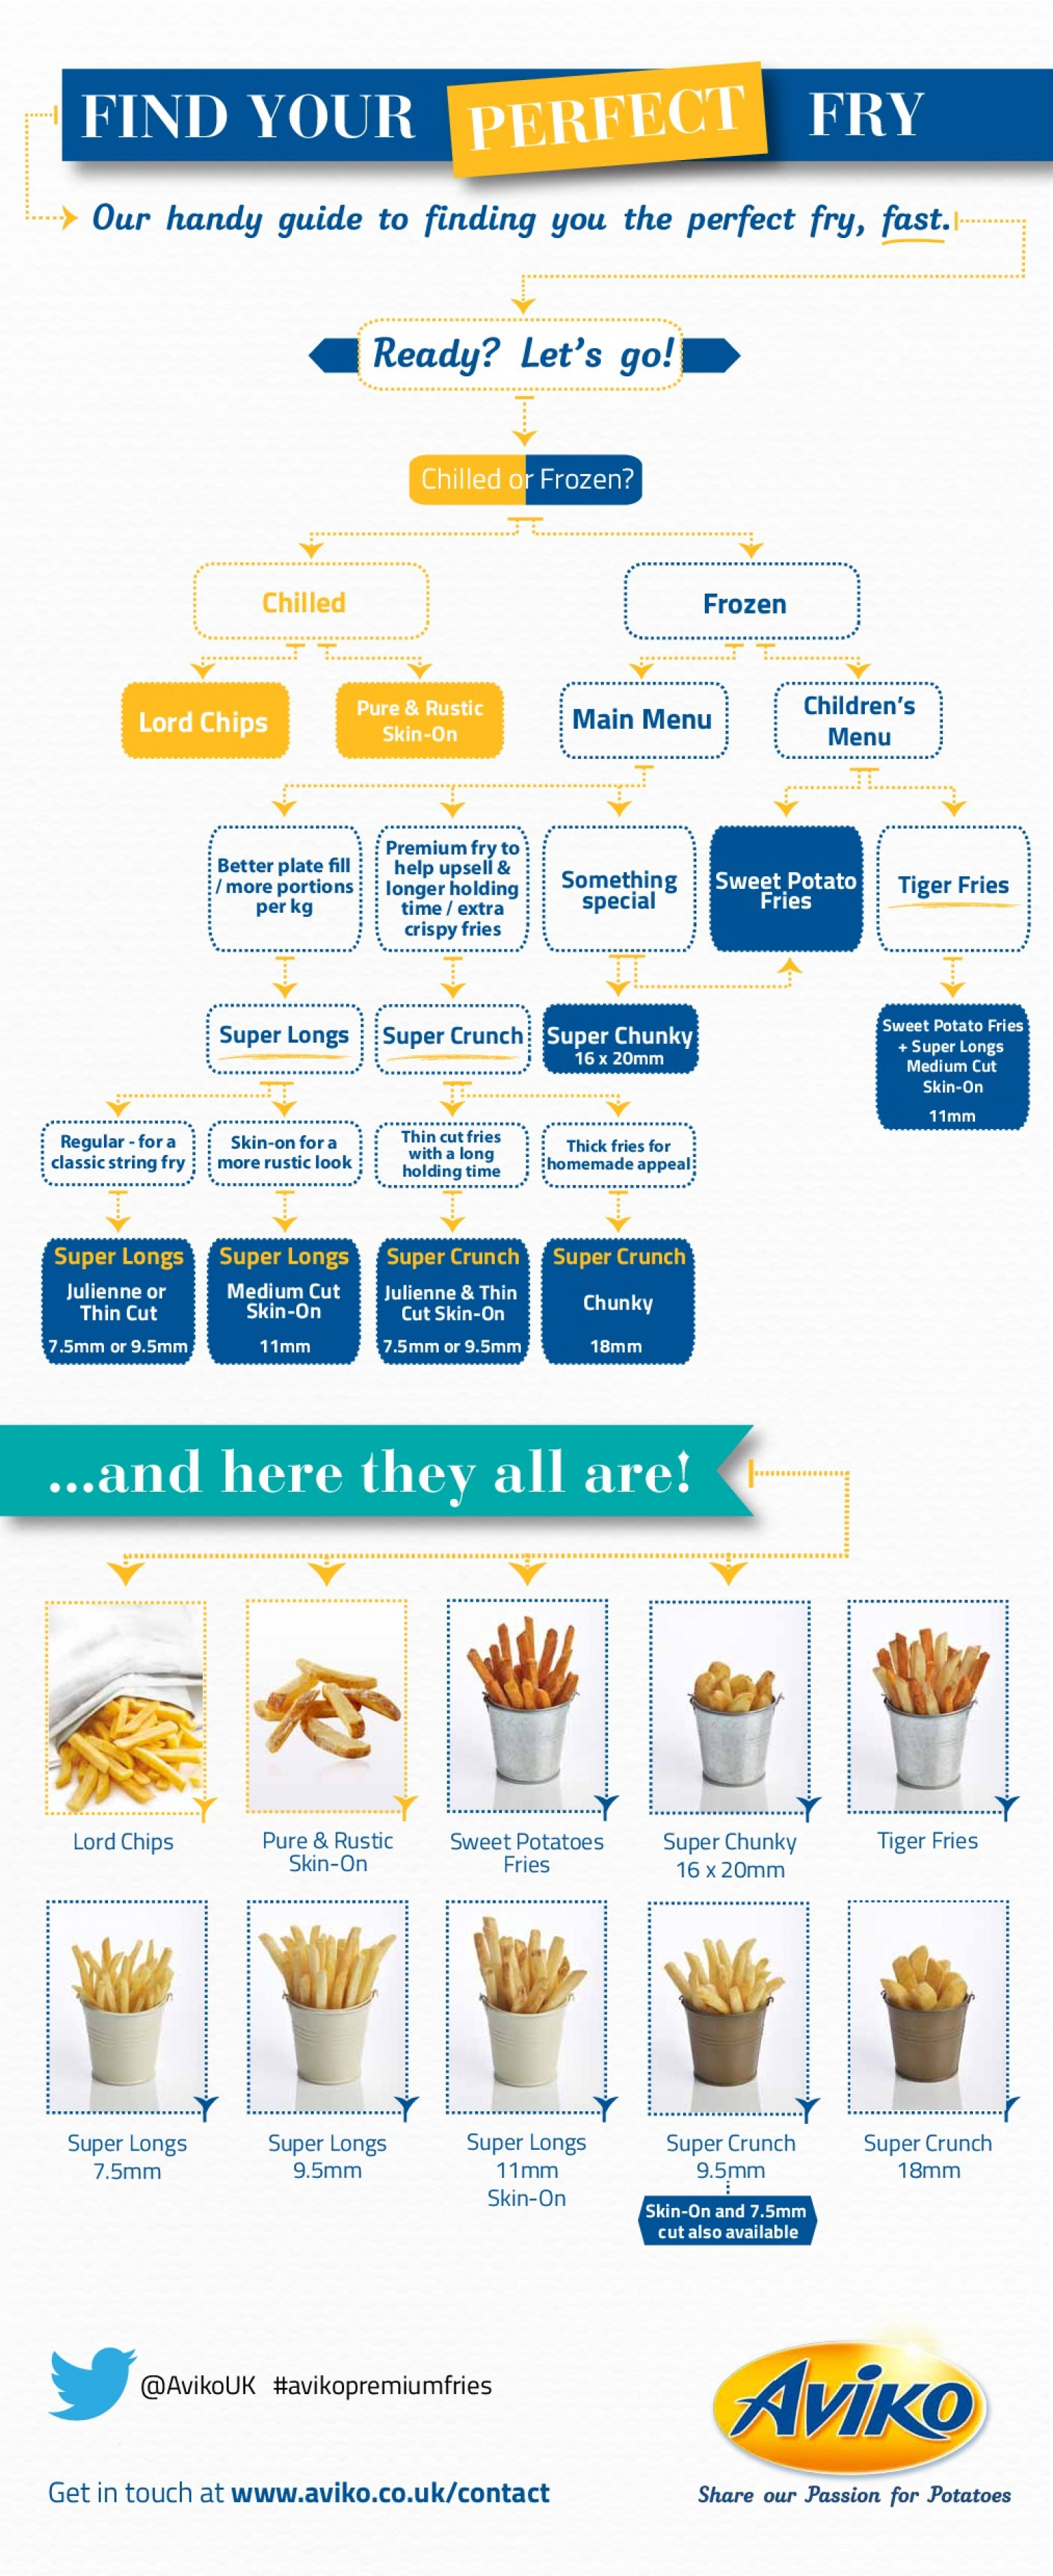 Find Your Perfect Fry Infographic